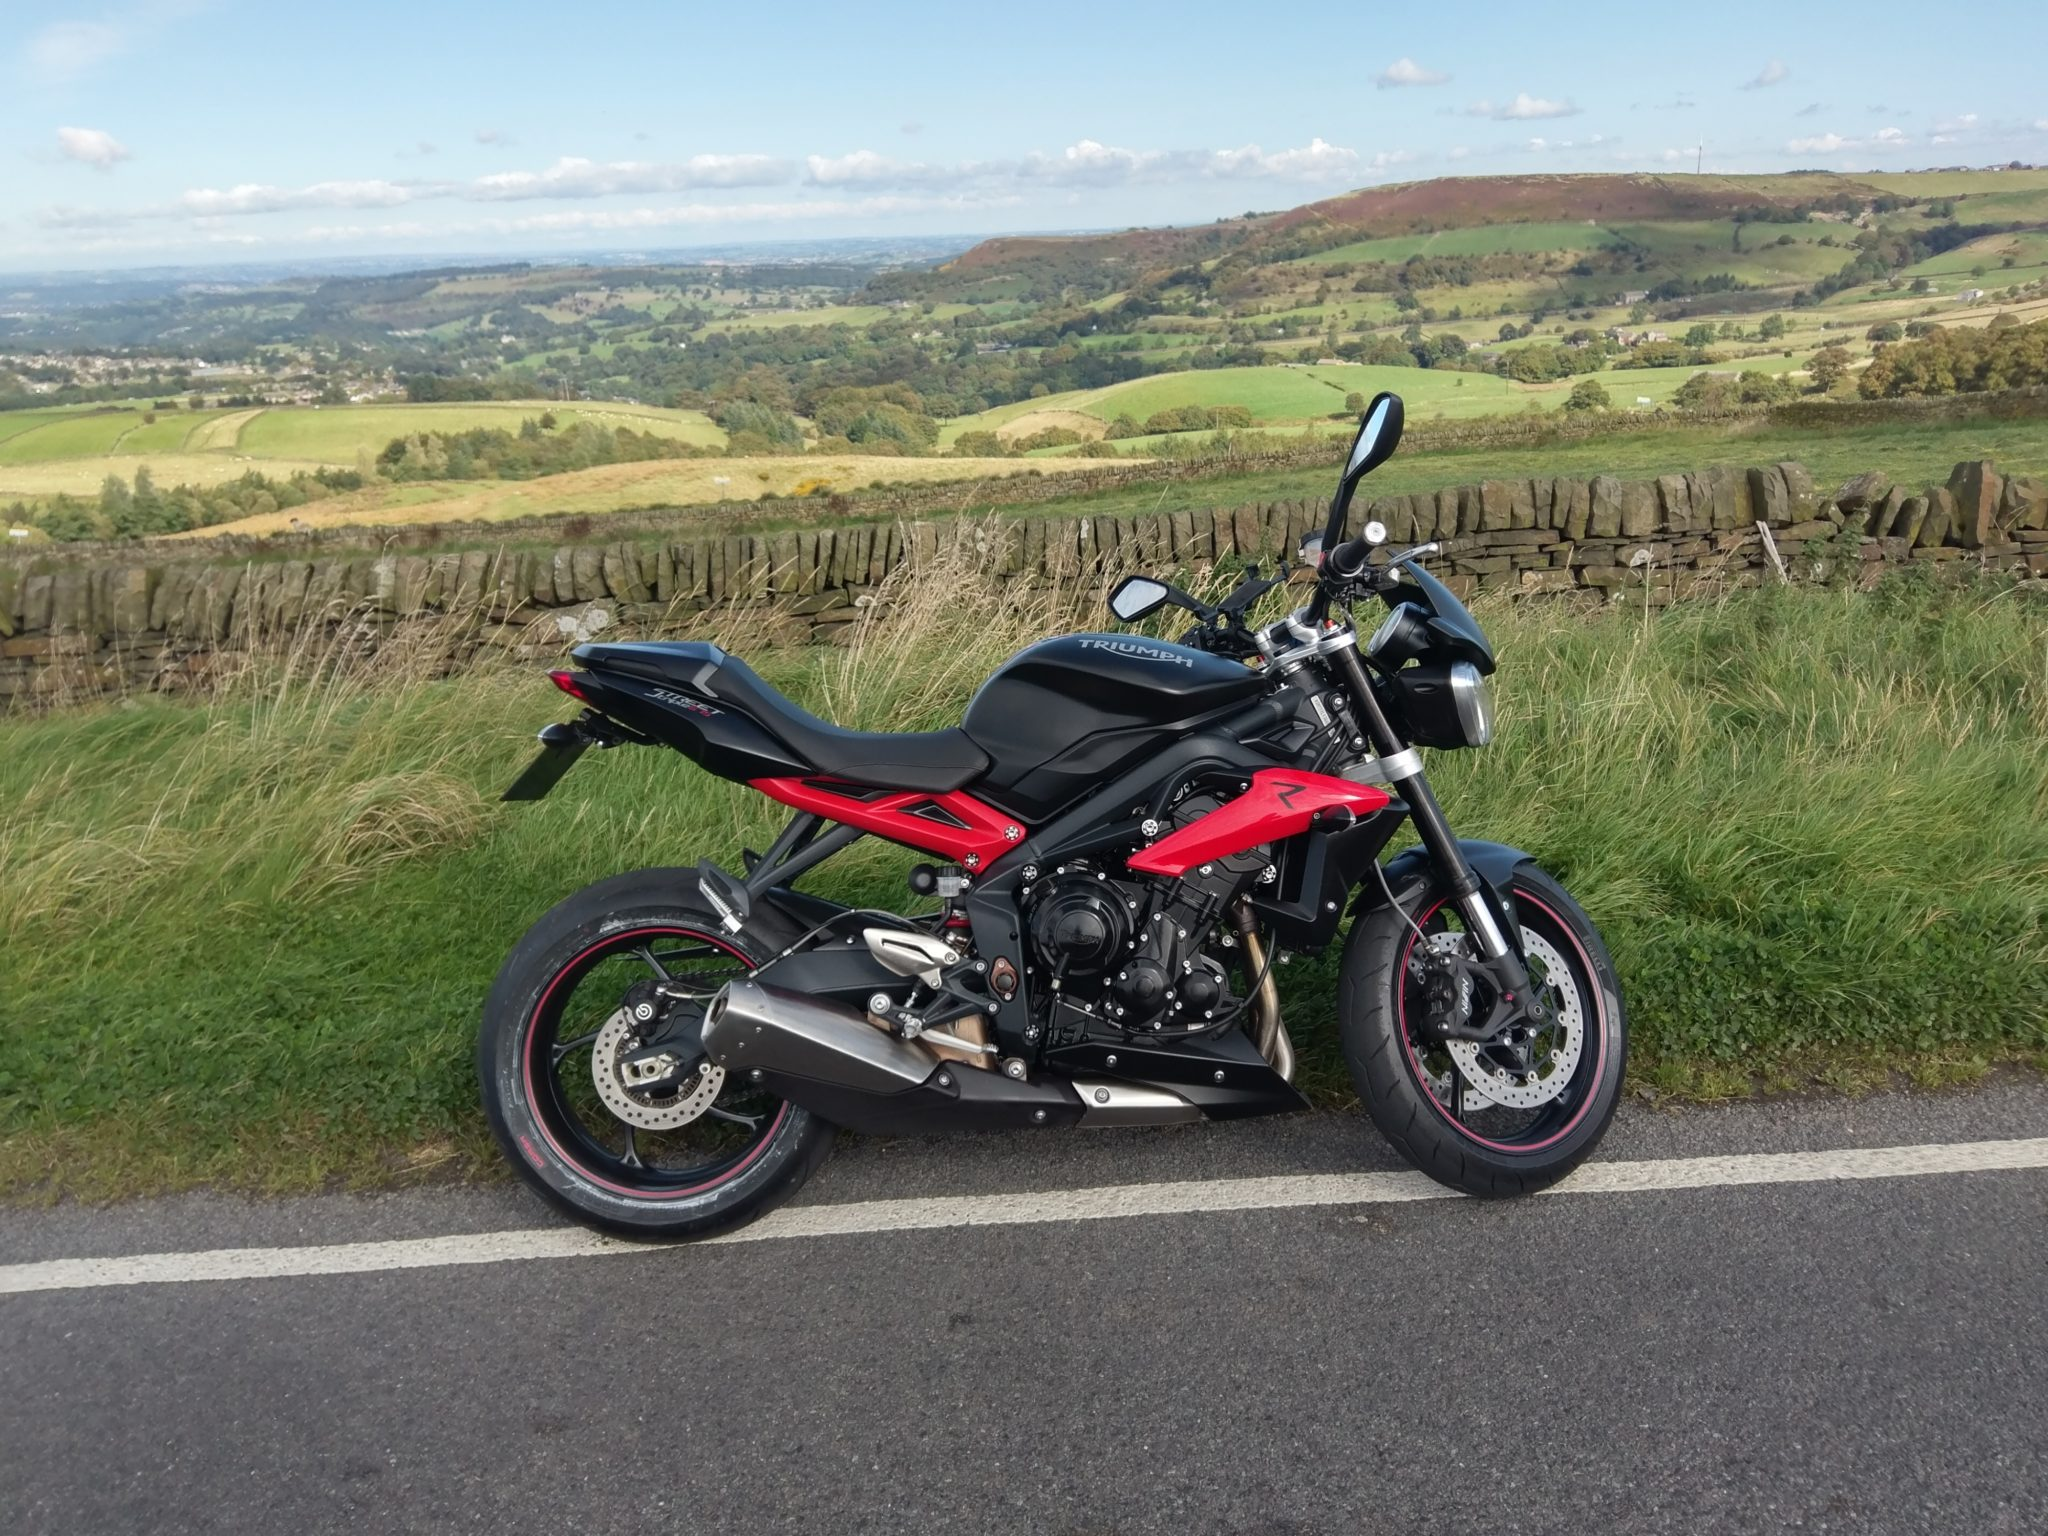 David shepherd – Triumph Street Triple R